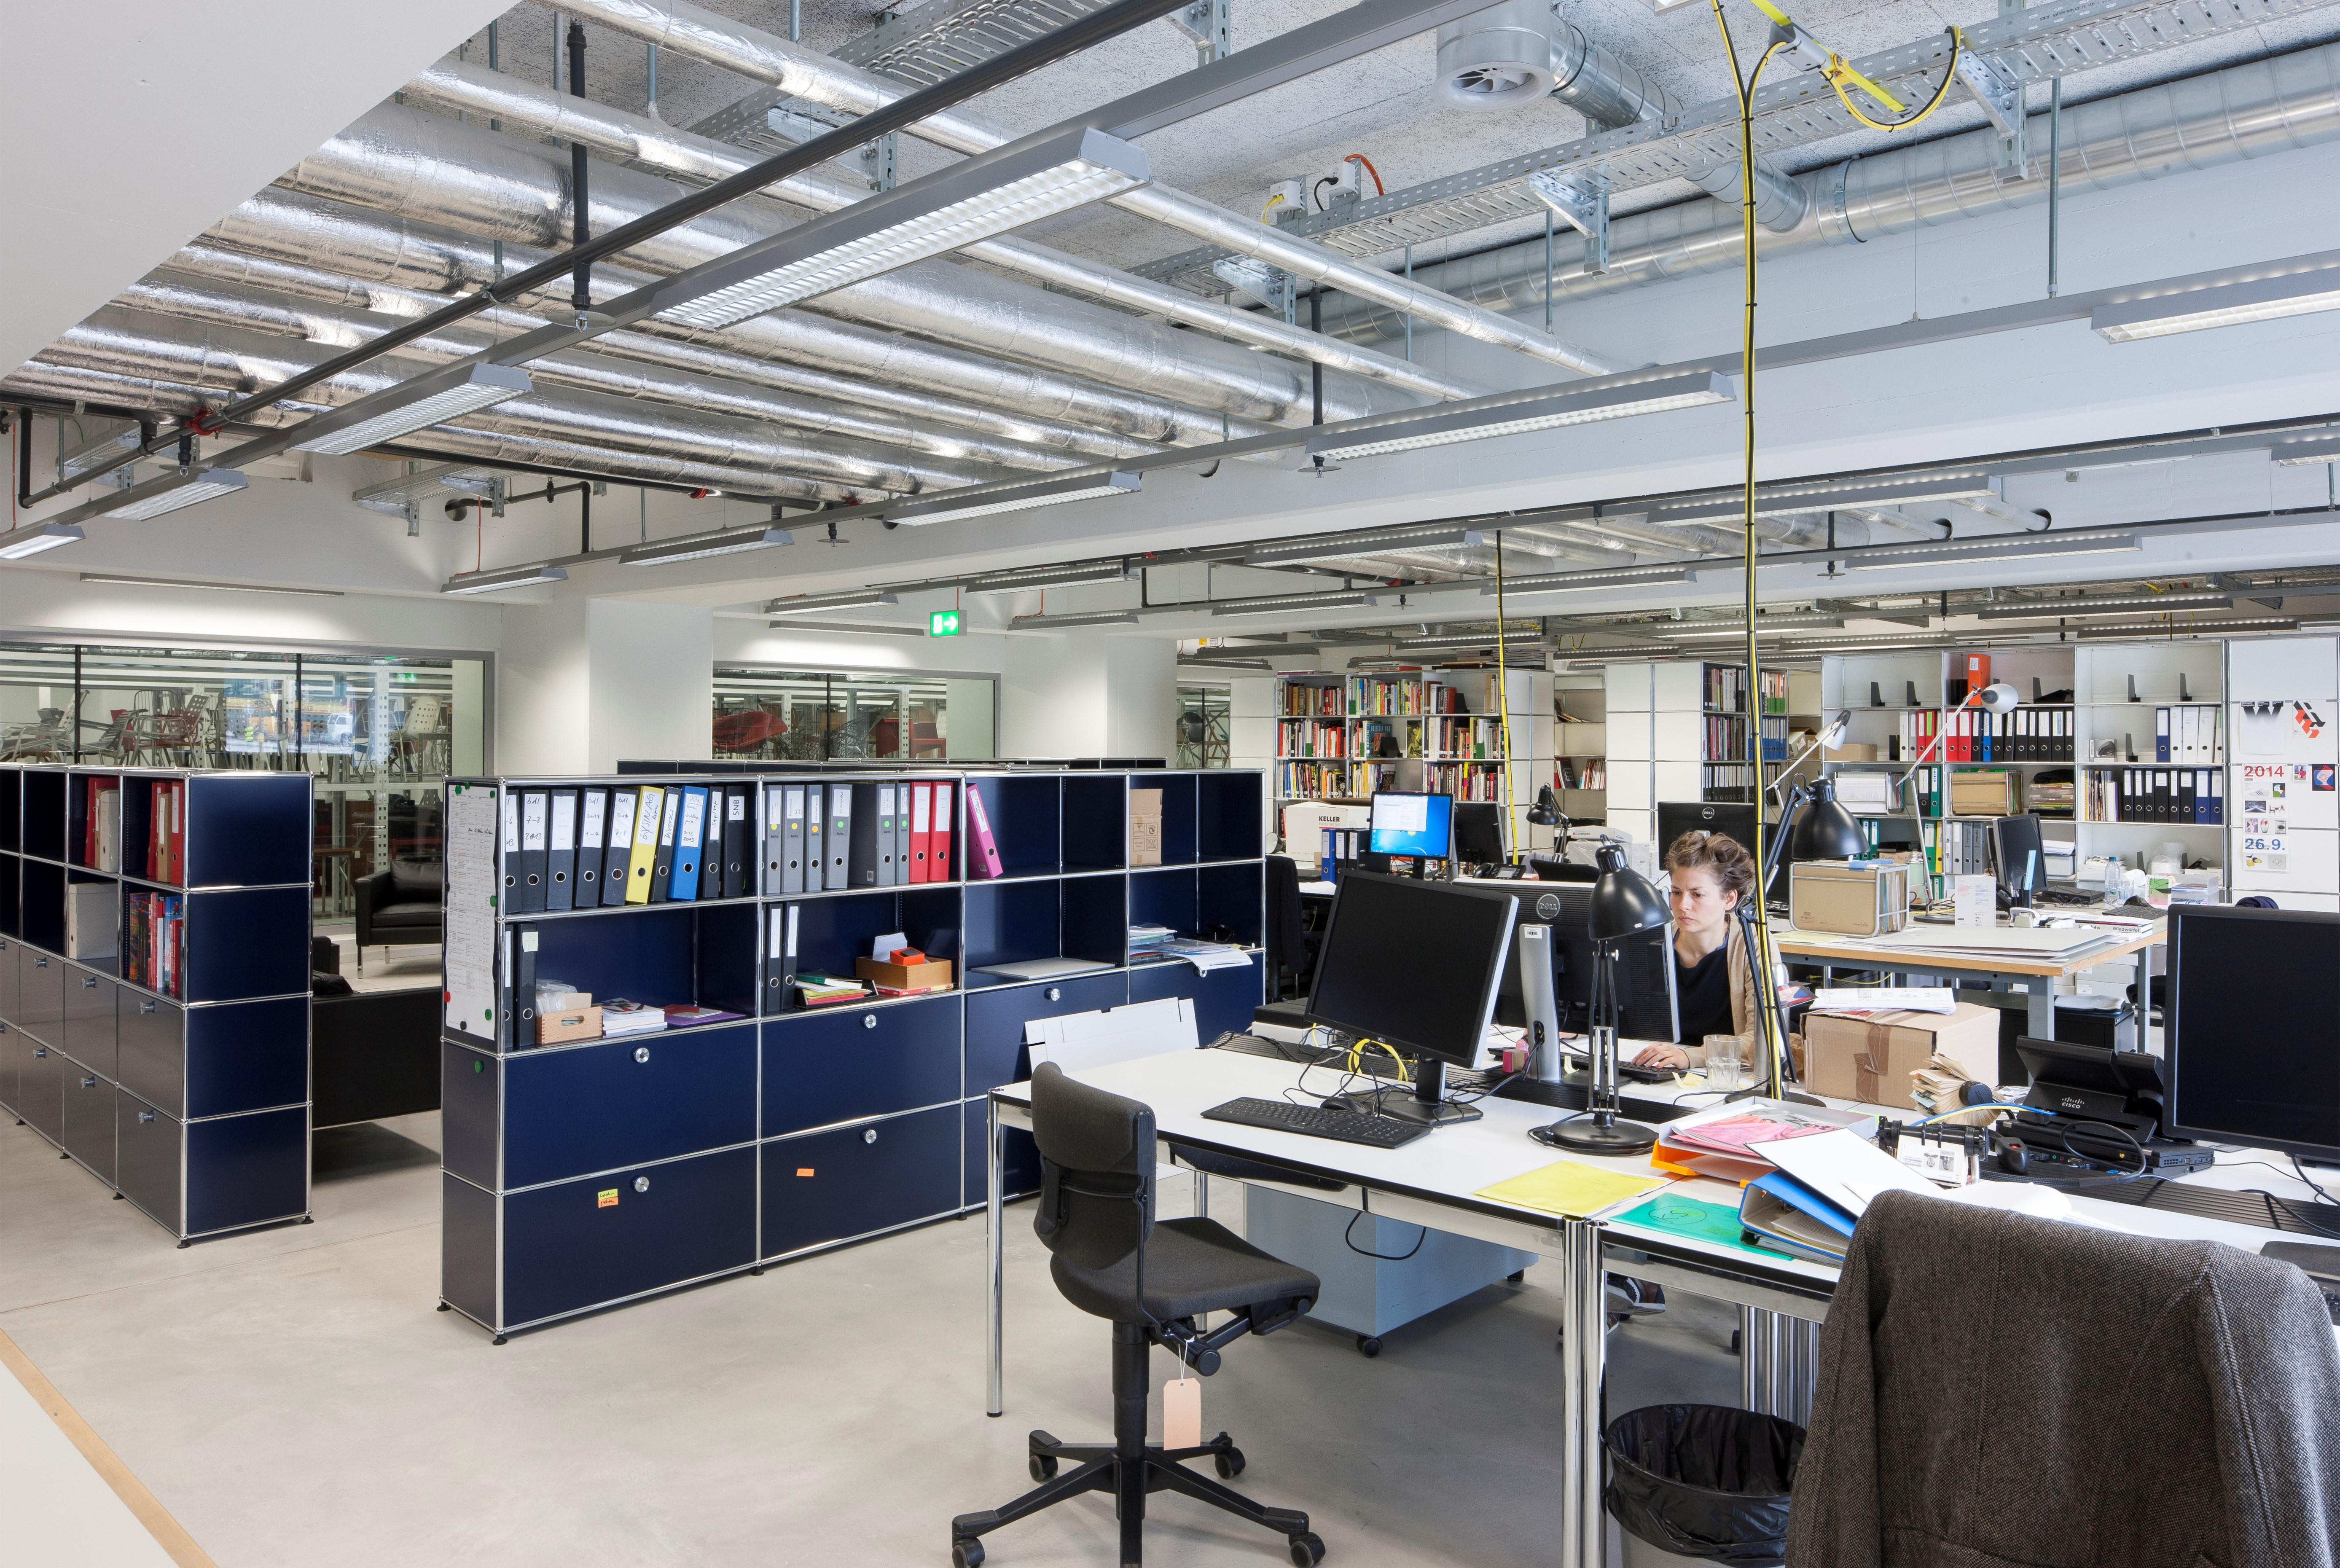 open plan industrial office with USM Haller filing cabinets and workstations